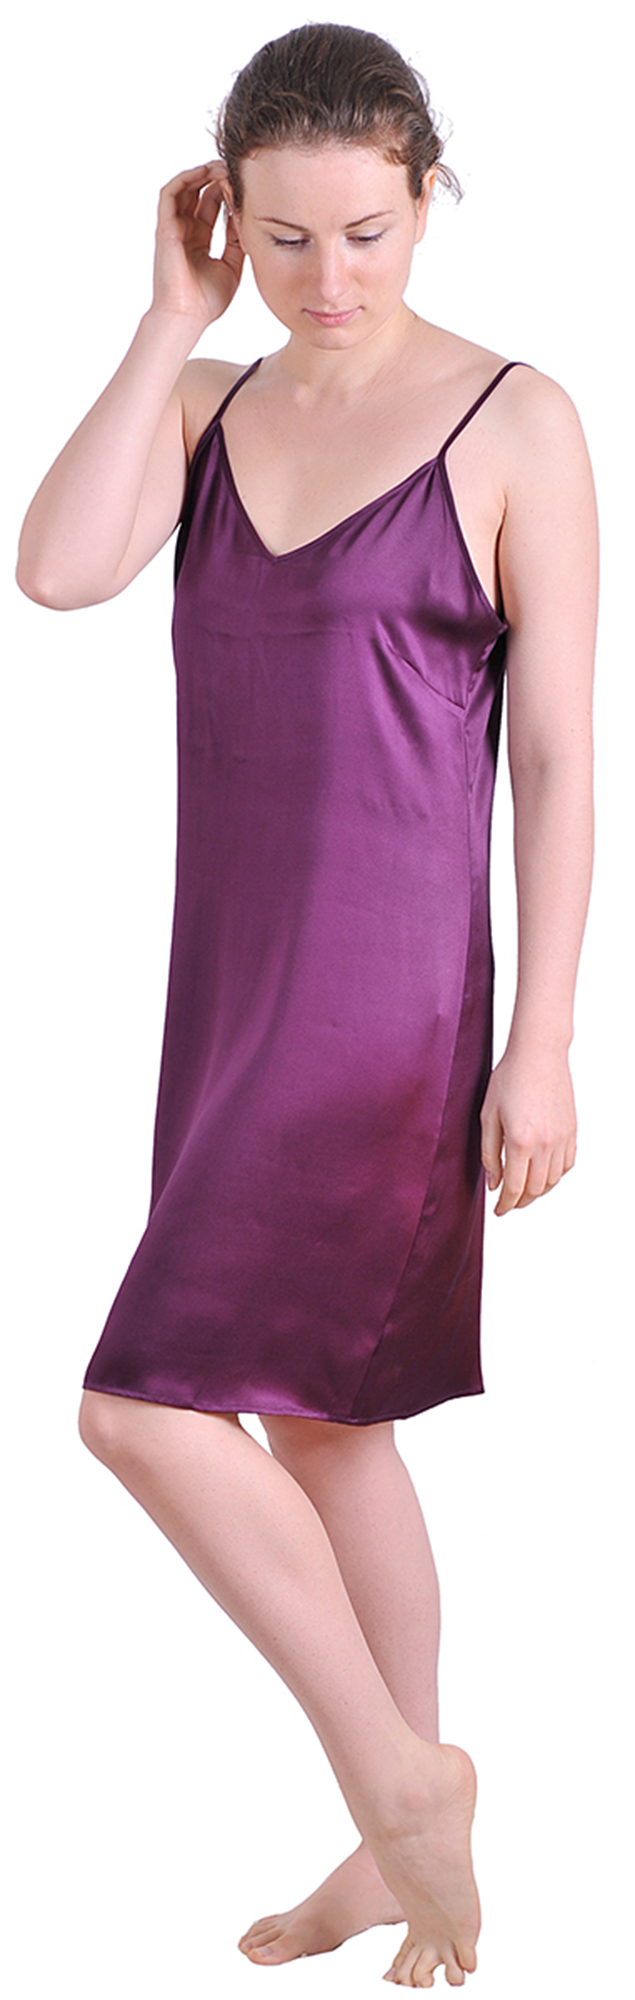 MARYCRAFTS SILK NIGHTIE SLEEP DRESS SLIP NIGHT GOWN ... - photo#22